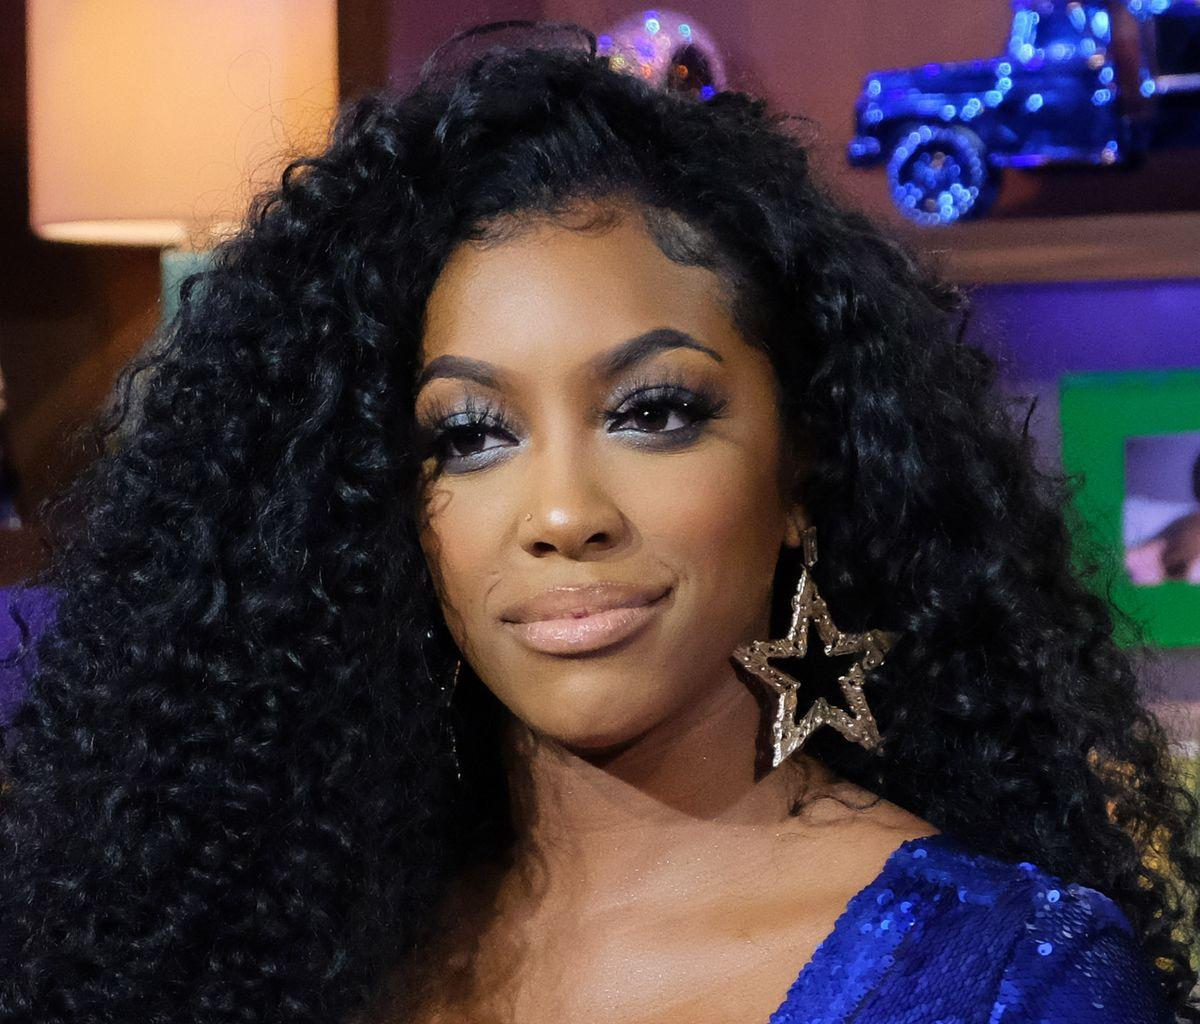 Porsha Williams Cannot Believe That Her Baby Girl PJ Is Almost Two Years Old